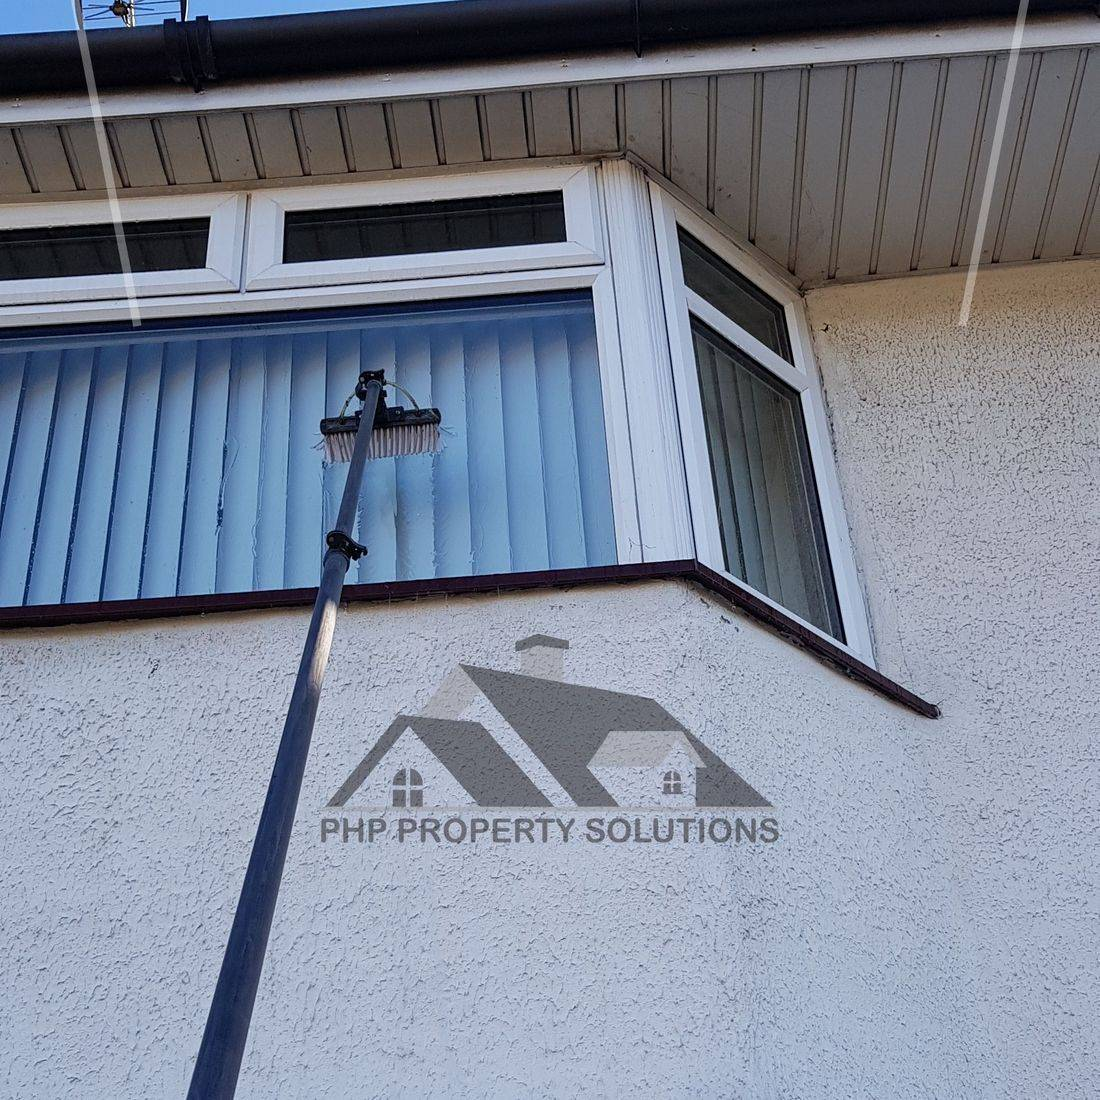 window cleaning, water fed pole, pure water, window cleaner, basingstoke, traditional